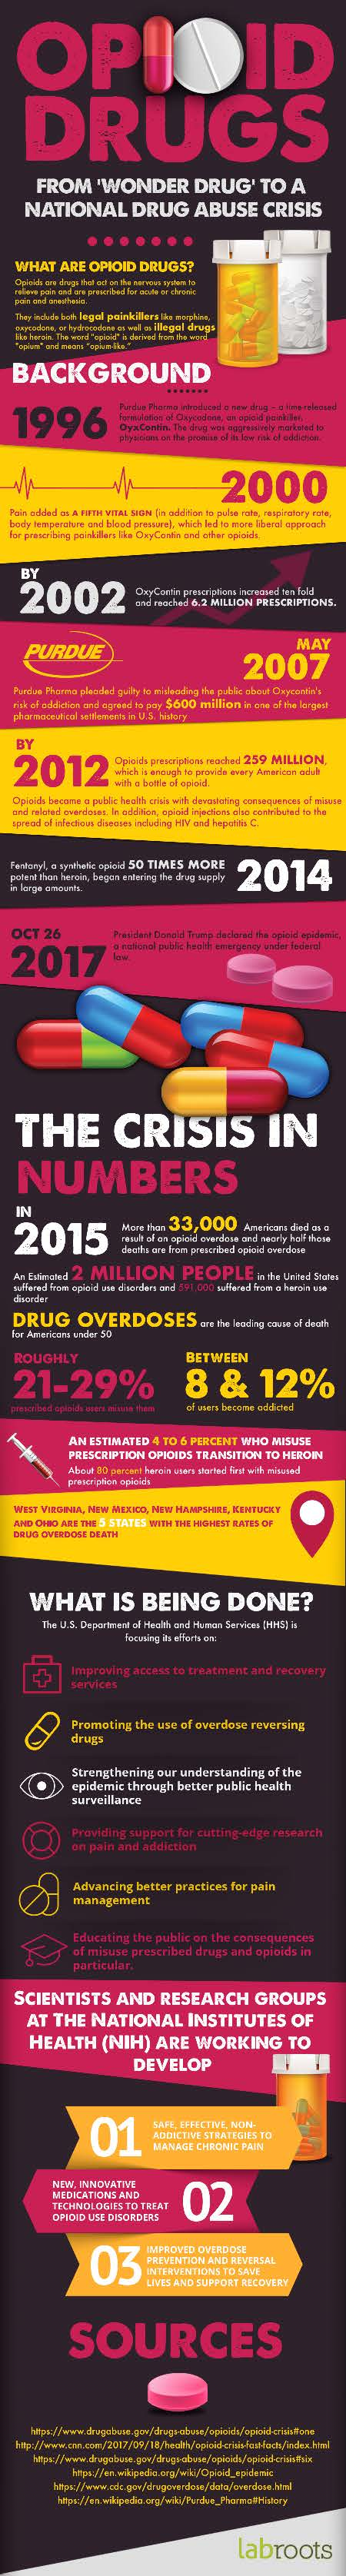 How a 'Wonder Drug' Led to a National Drug Abuse Crisis - Infographic